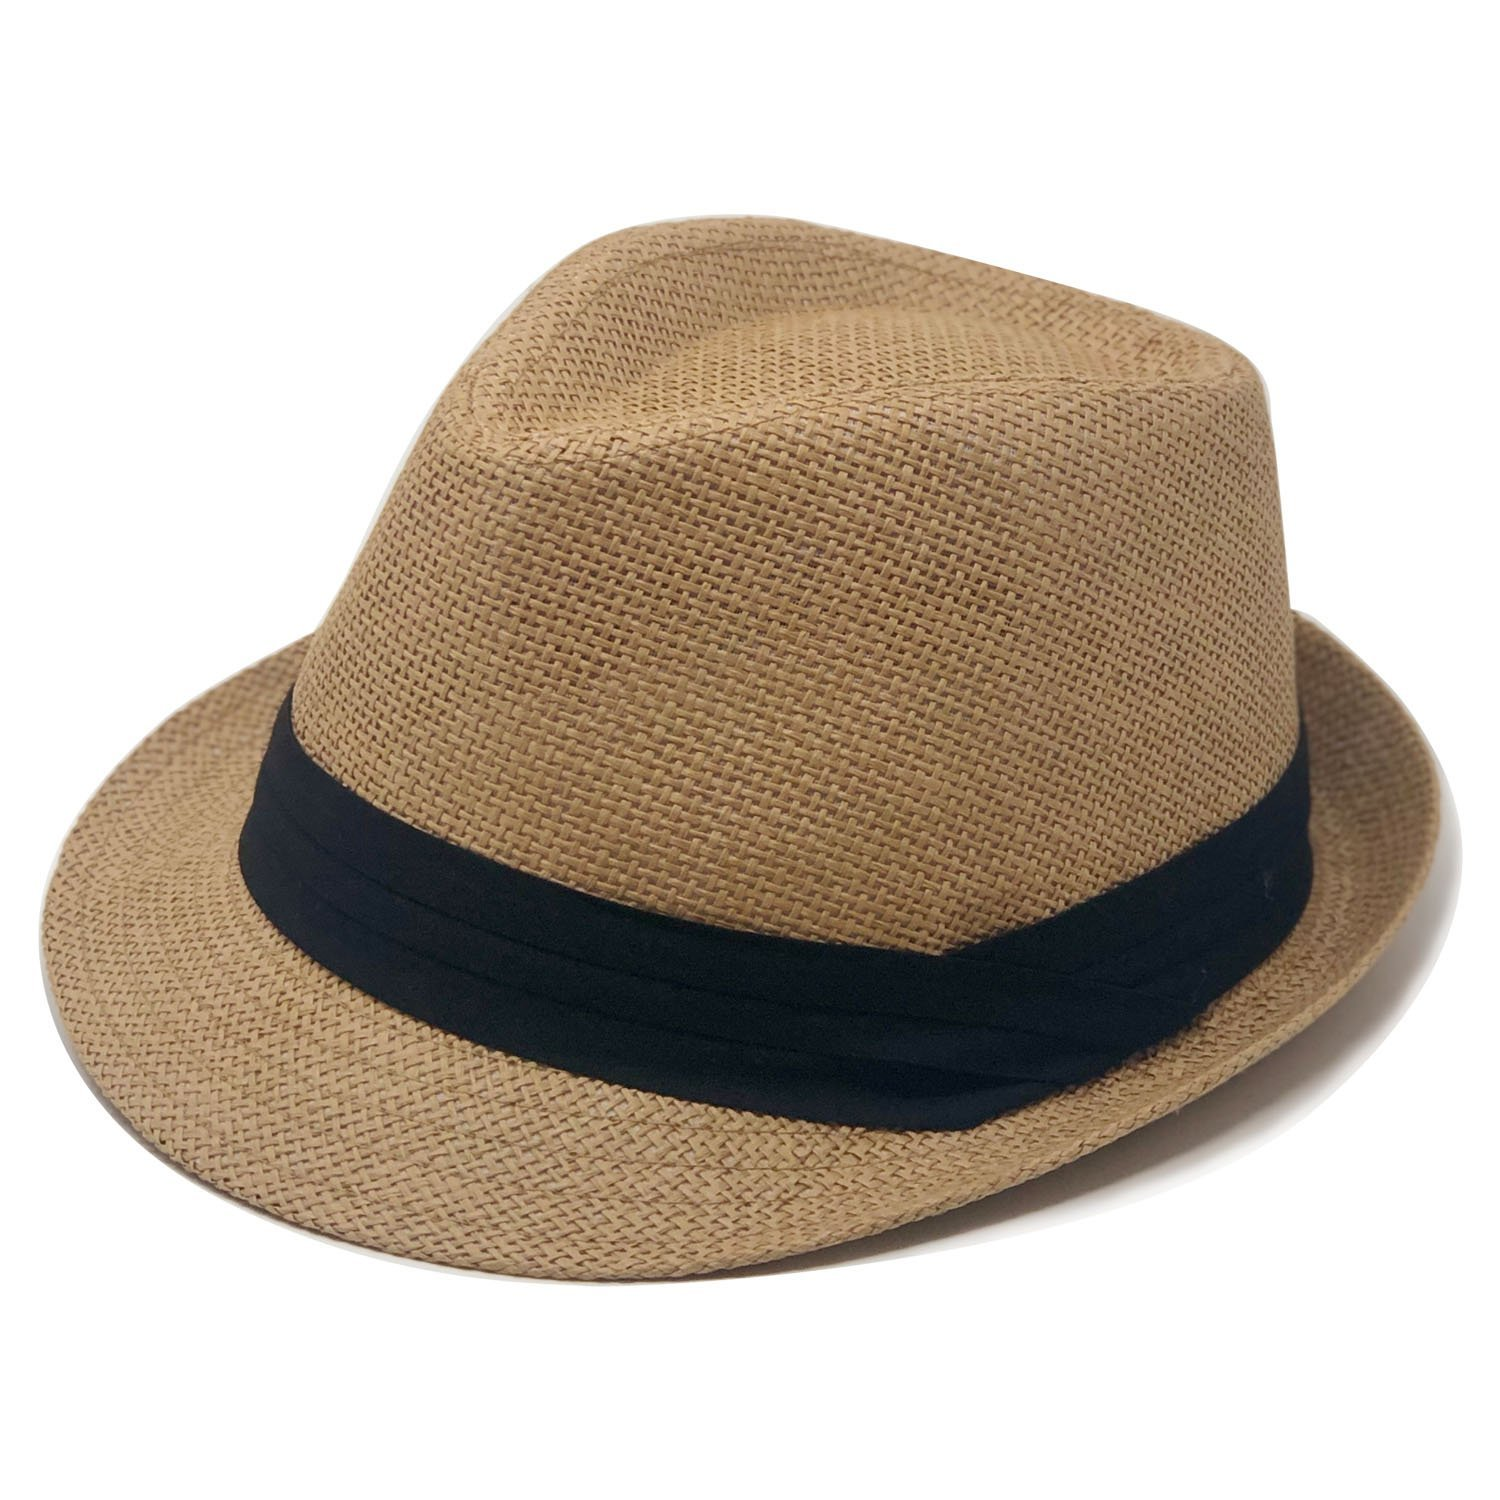 ROOF TOP STRAW HAT